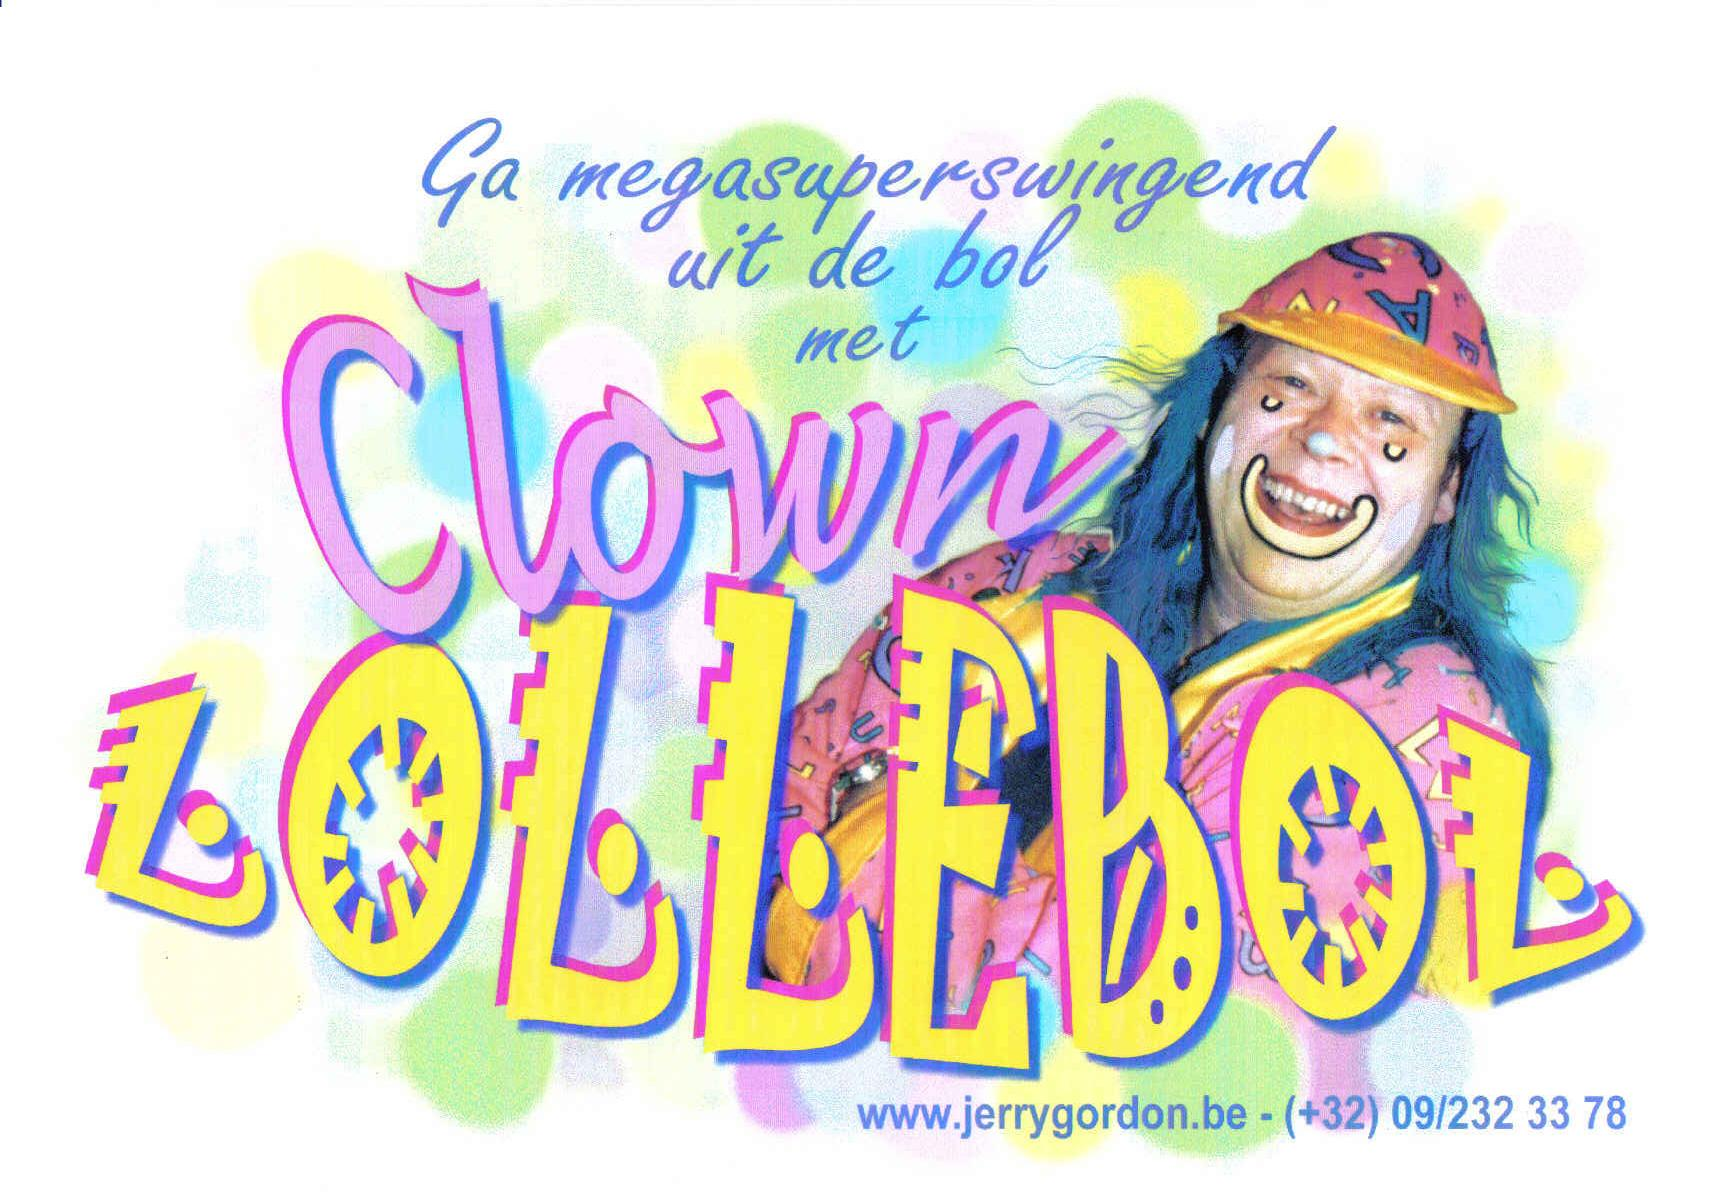 clown LOLLEBOL